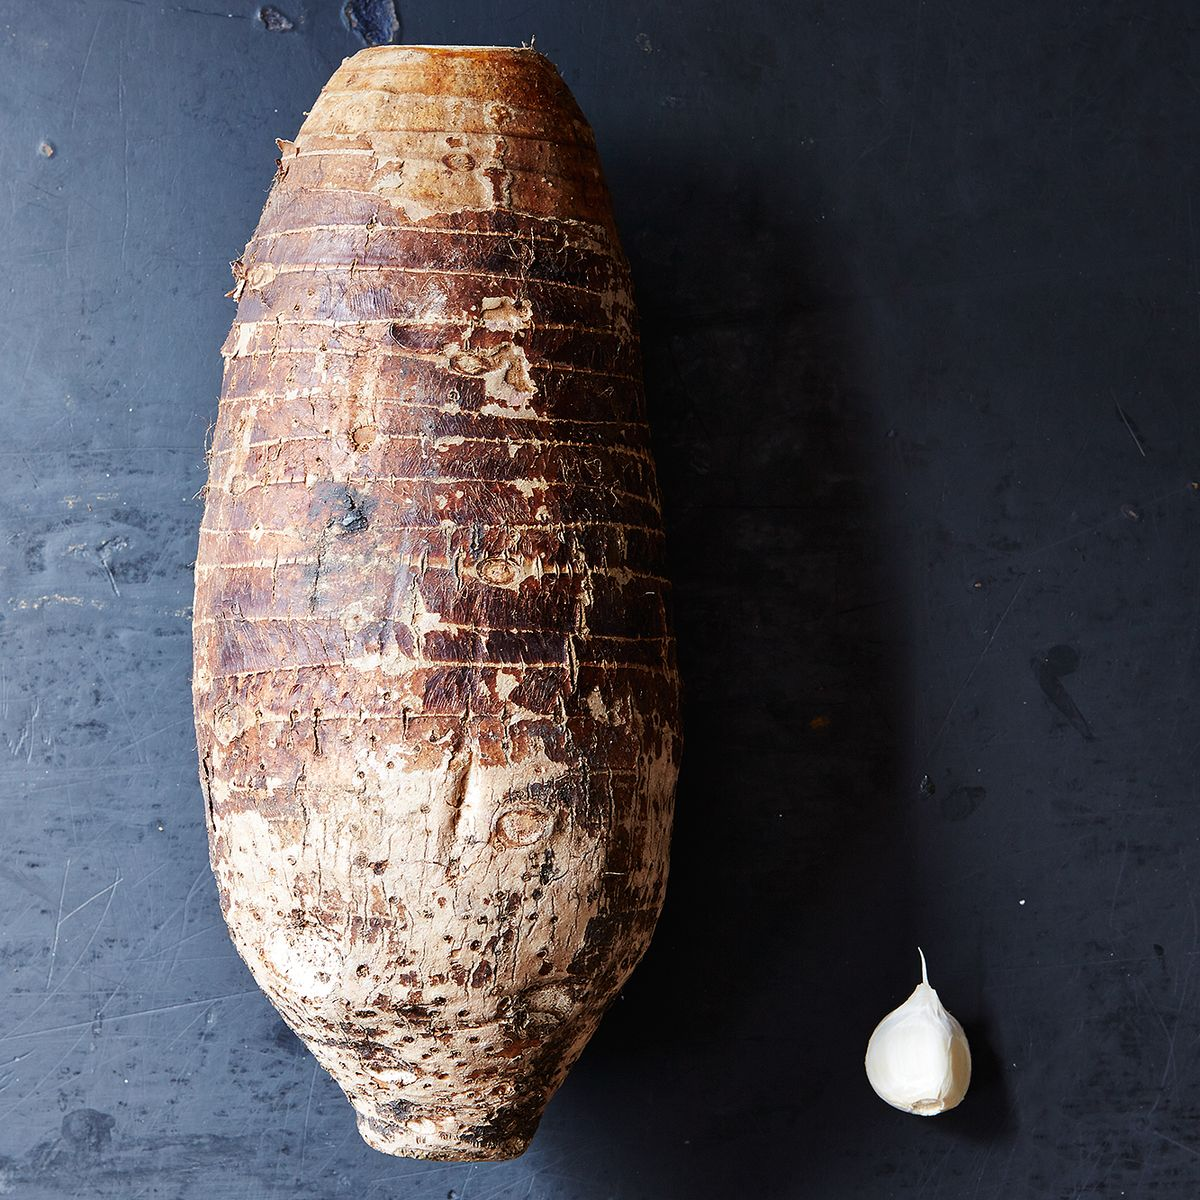 All About Tropical Tubers How To Buy Store And Use Taro Root